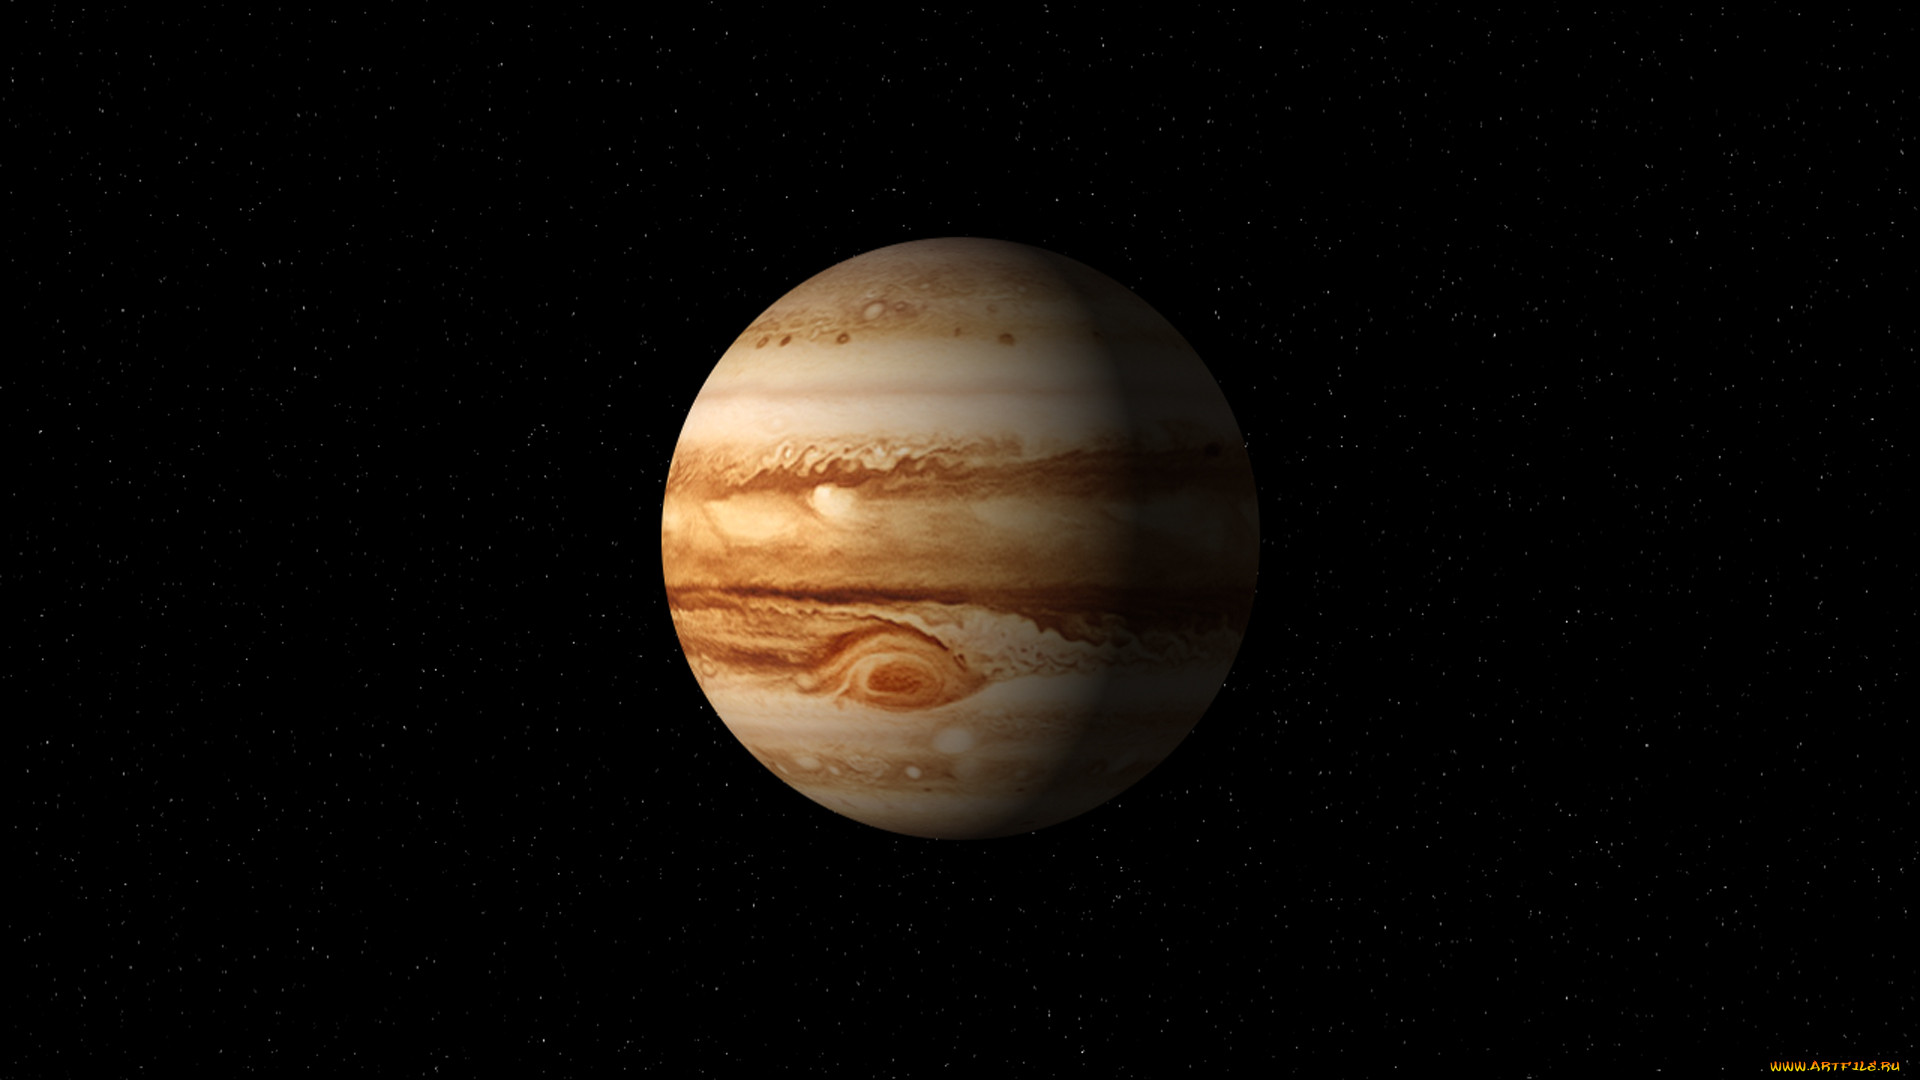 an overview of the planet jupiter